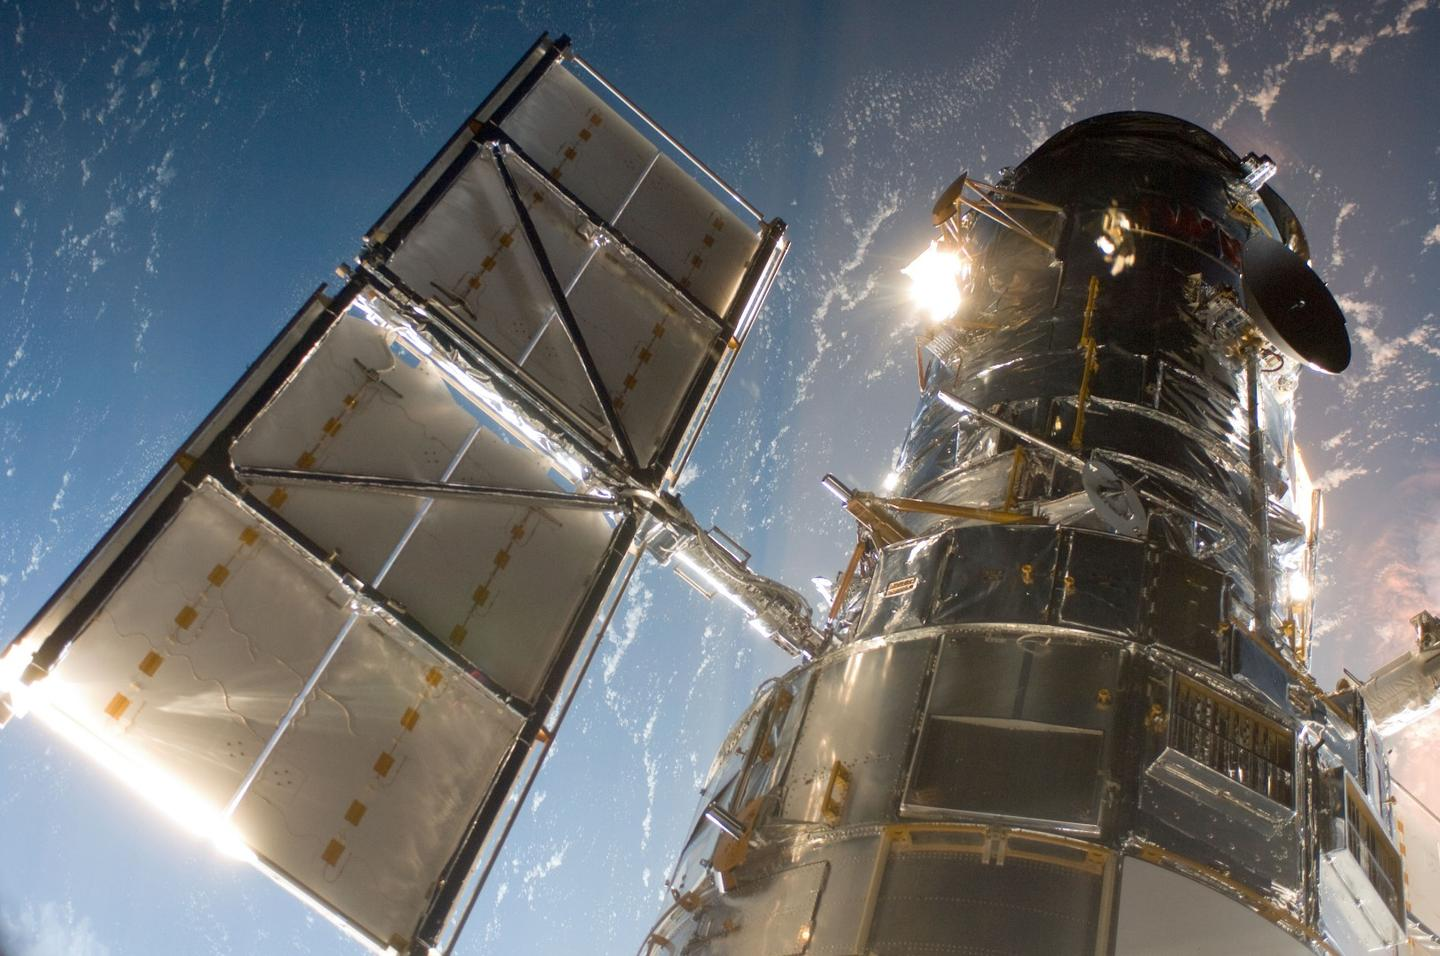 Hubble's Wide Field Camera 3 has stopped working due to a hardware fault